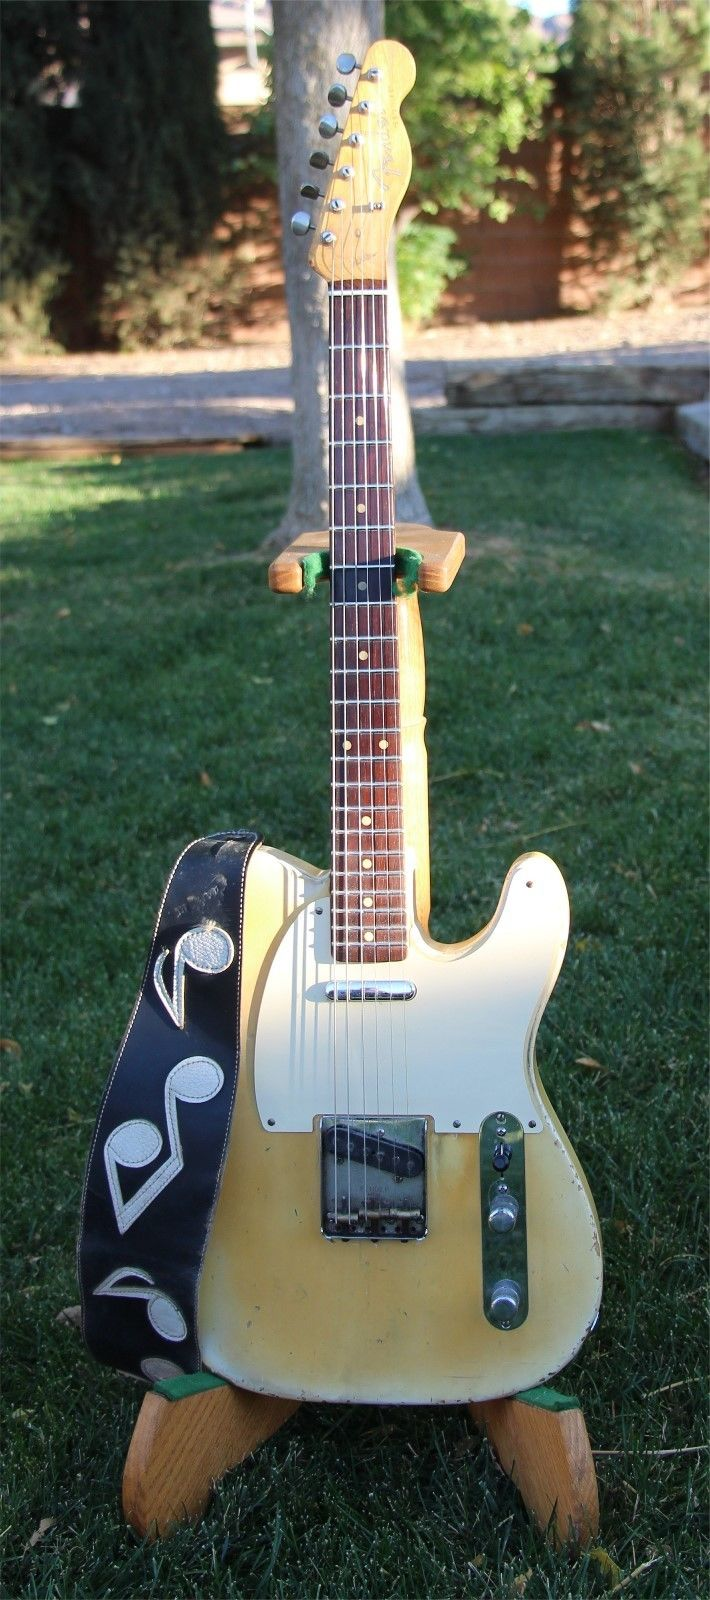 The Authentic Earth III Stevie Ray Vaughan Musical Note Guitar Strap